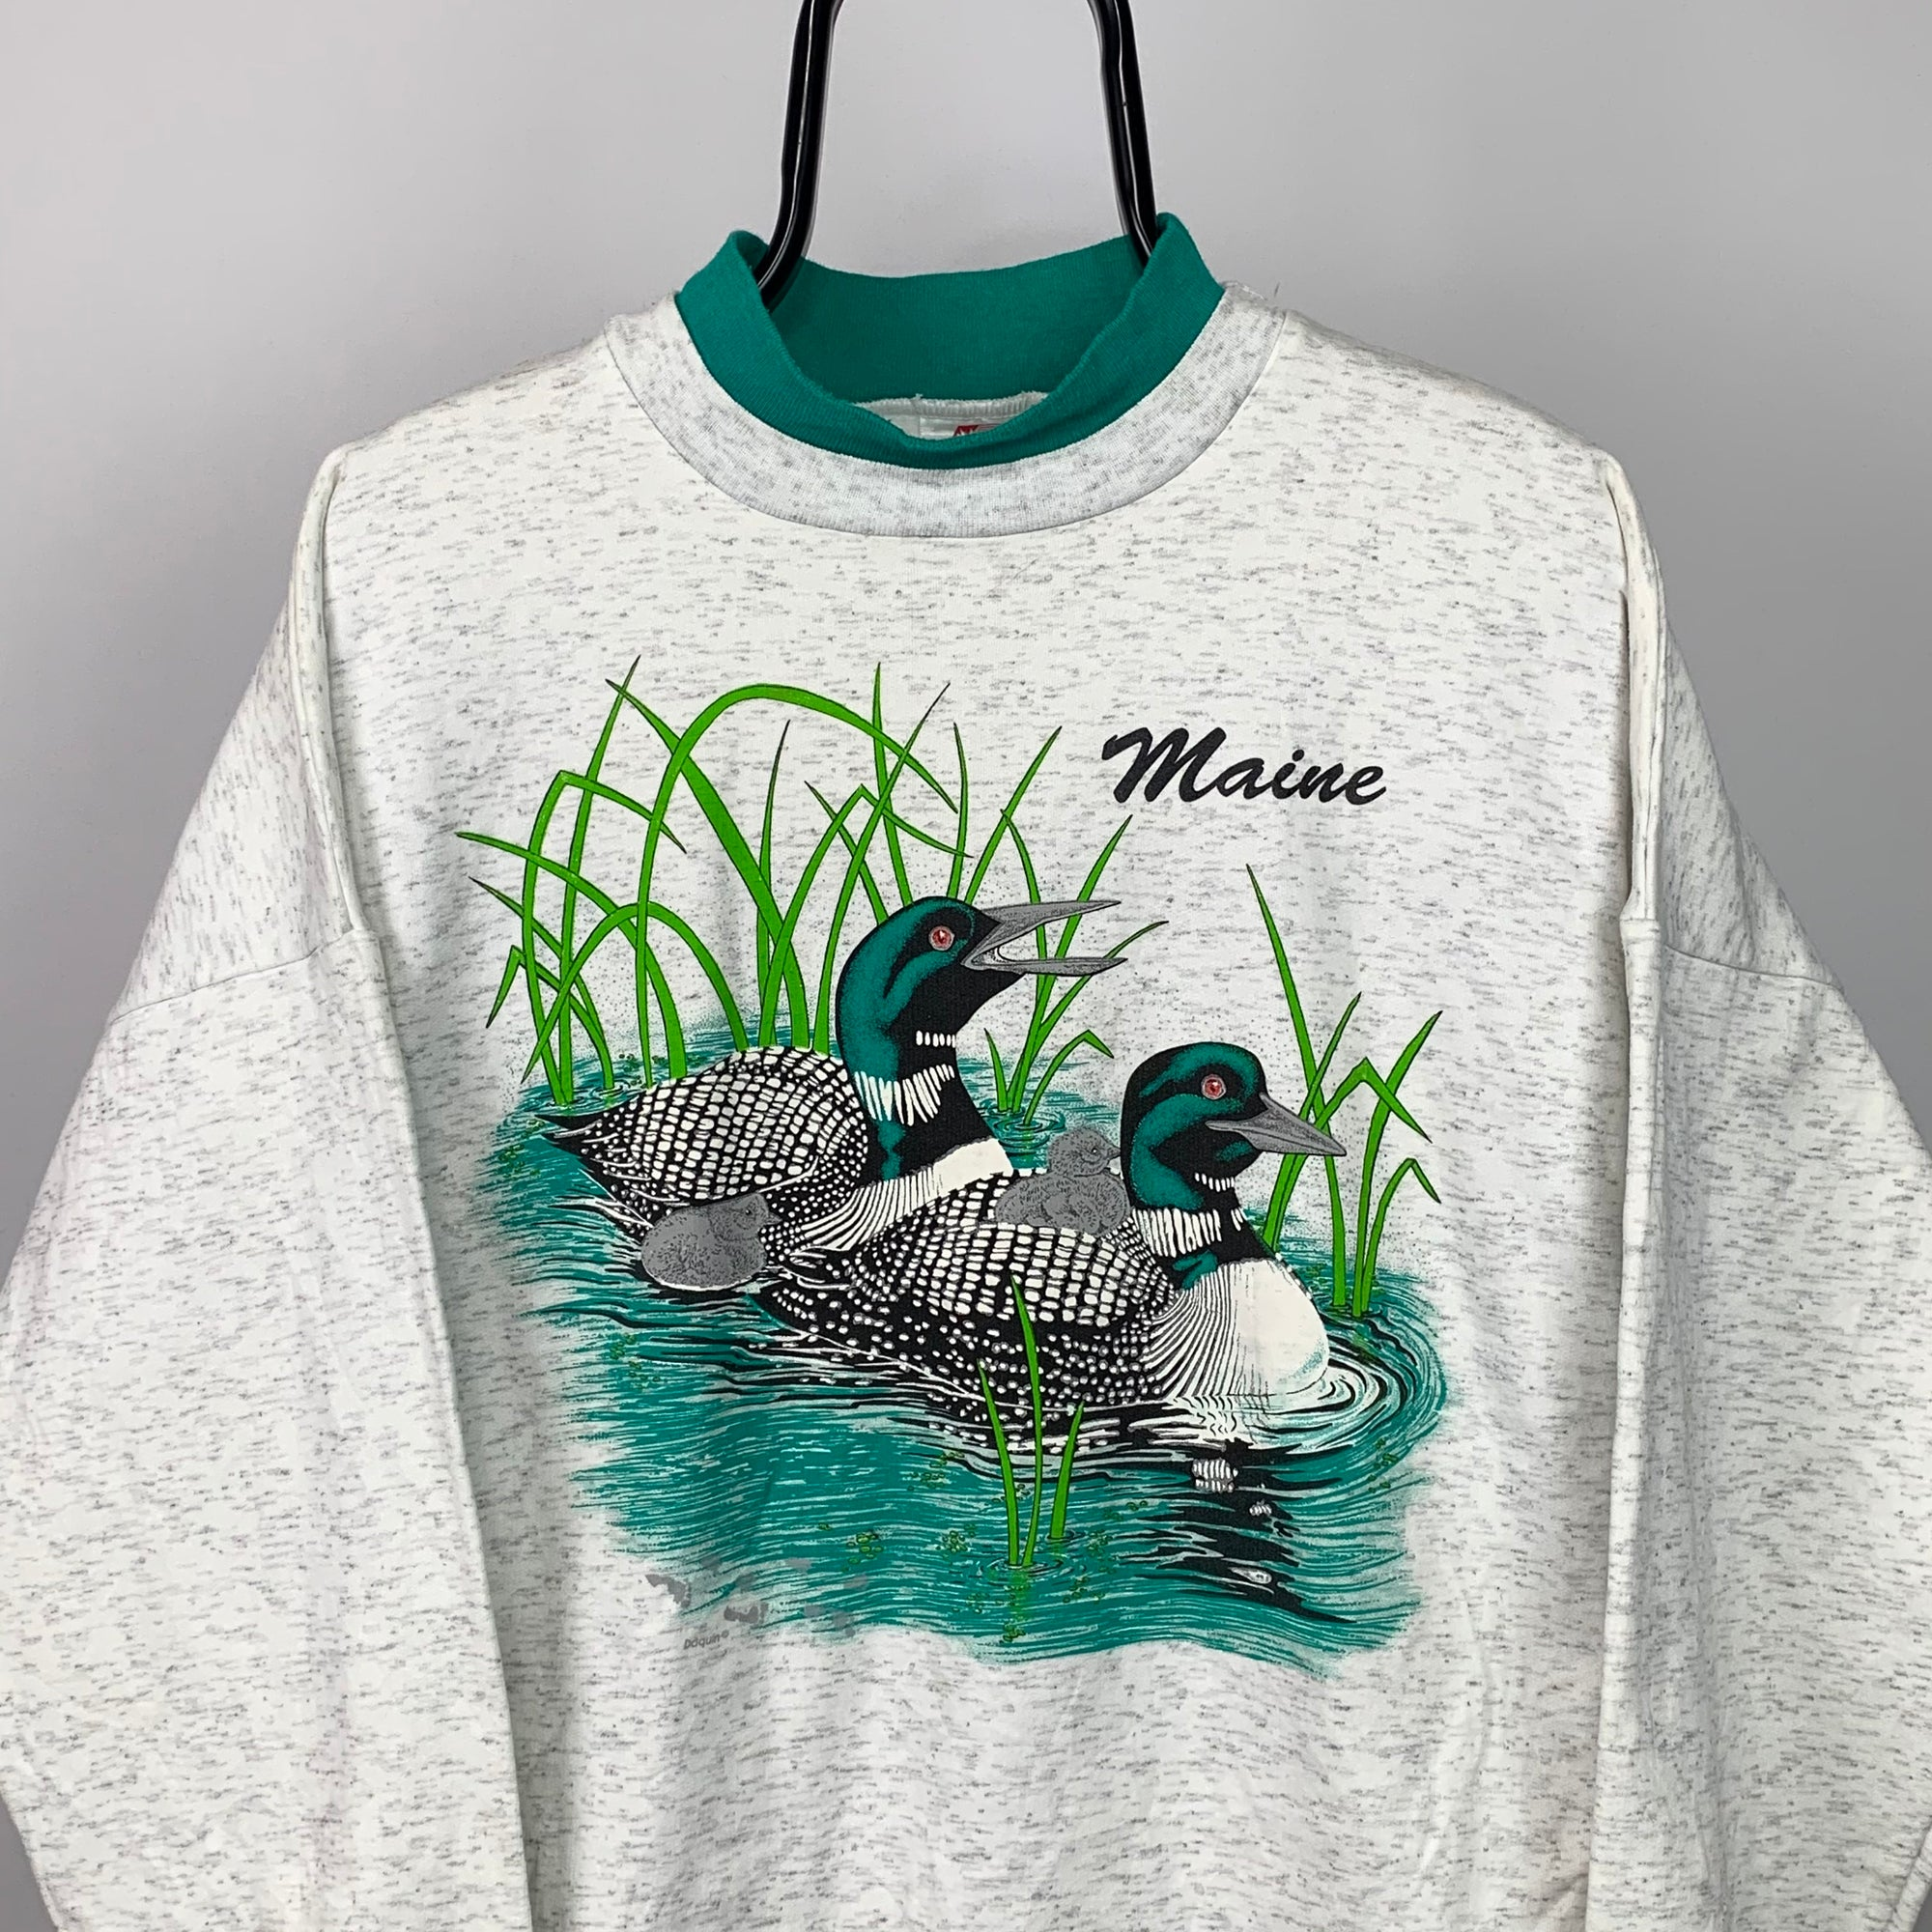 Vintage 90s Maine 'Duck' Print Sweatshirt - Men's Medium/Women's Large